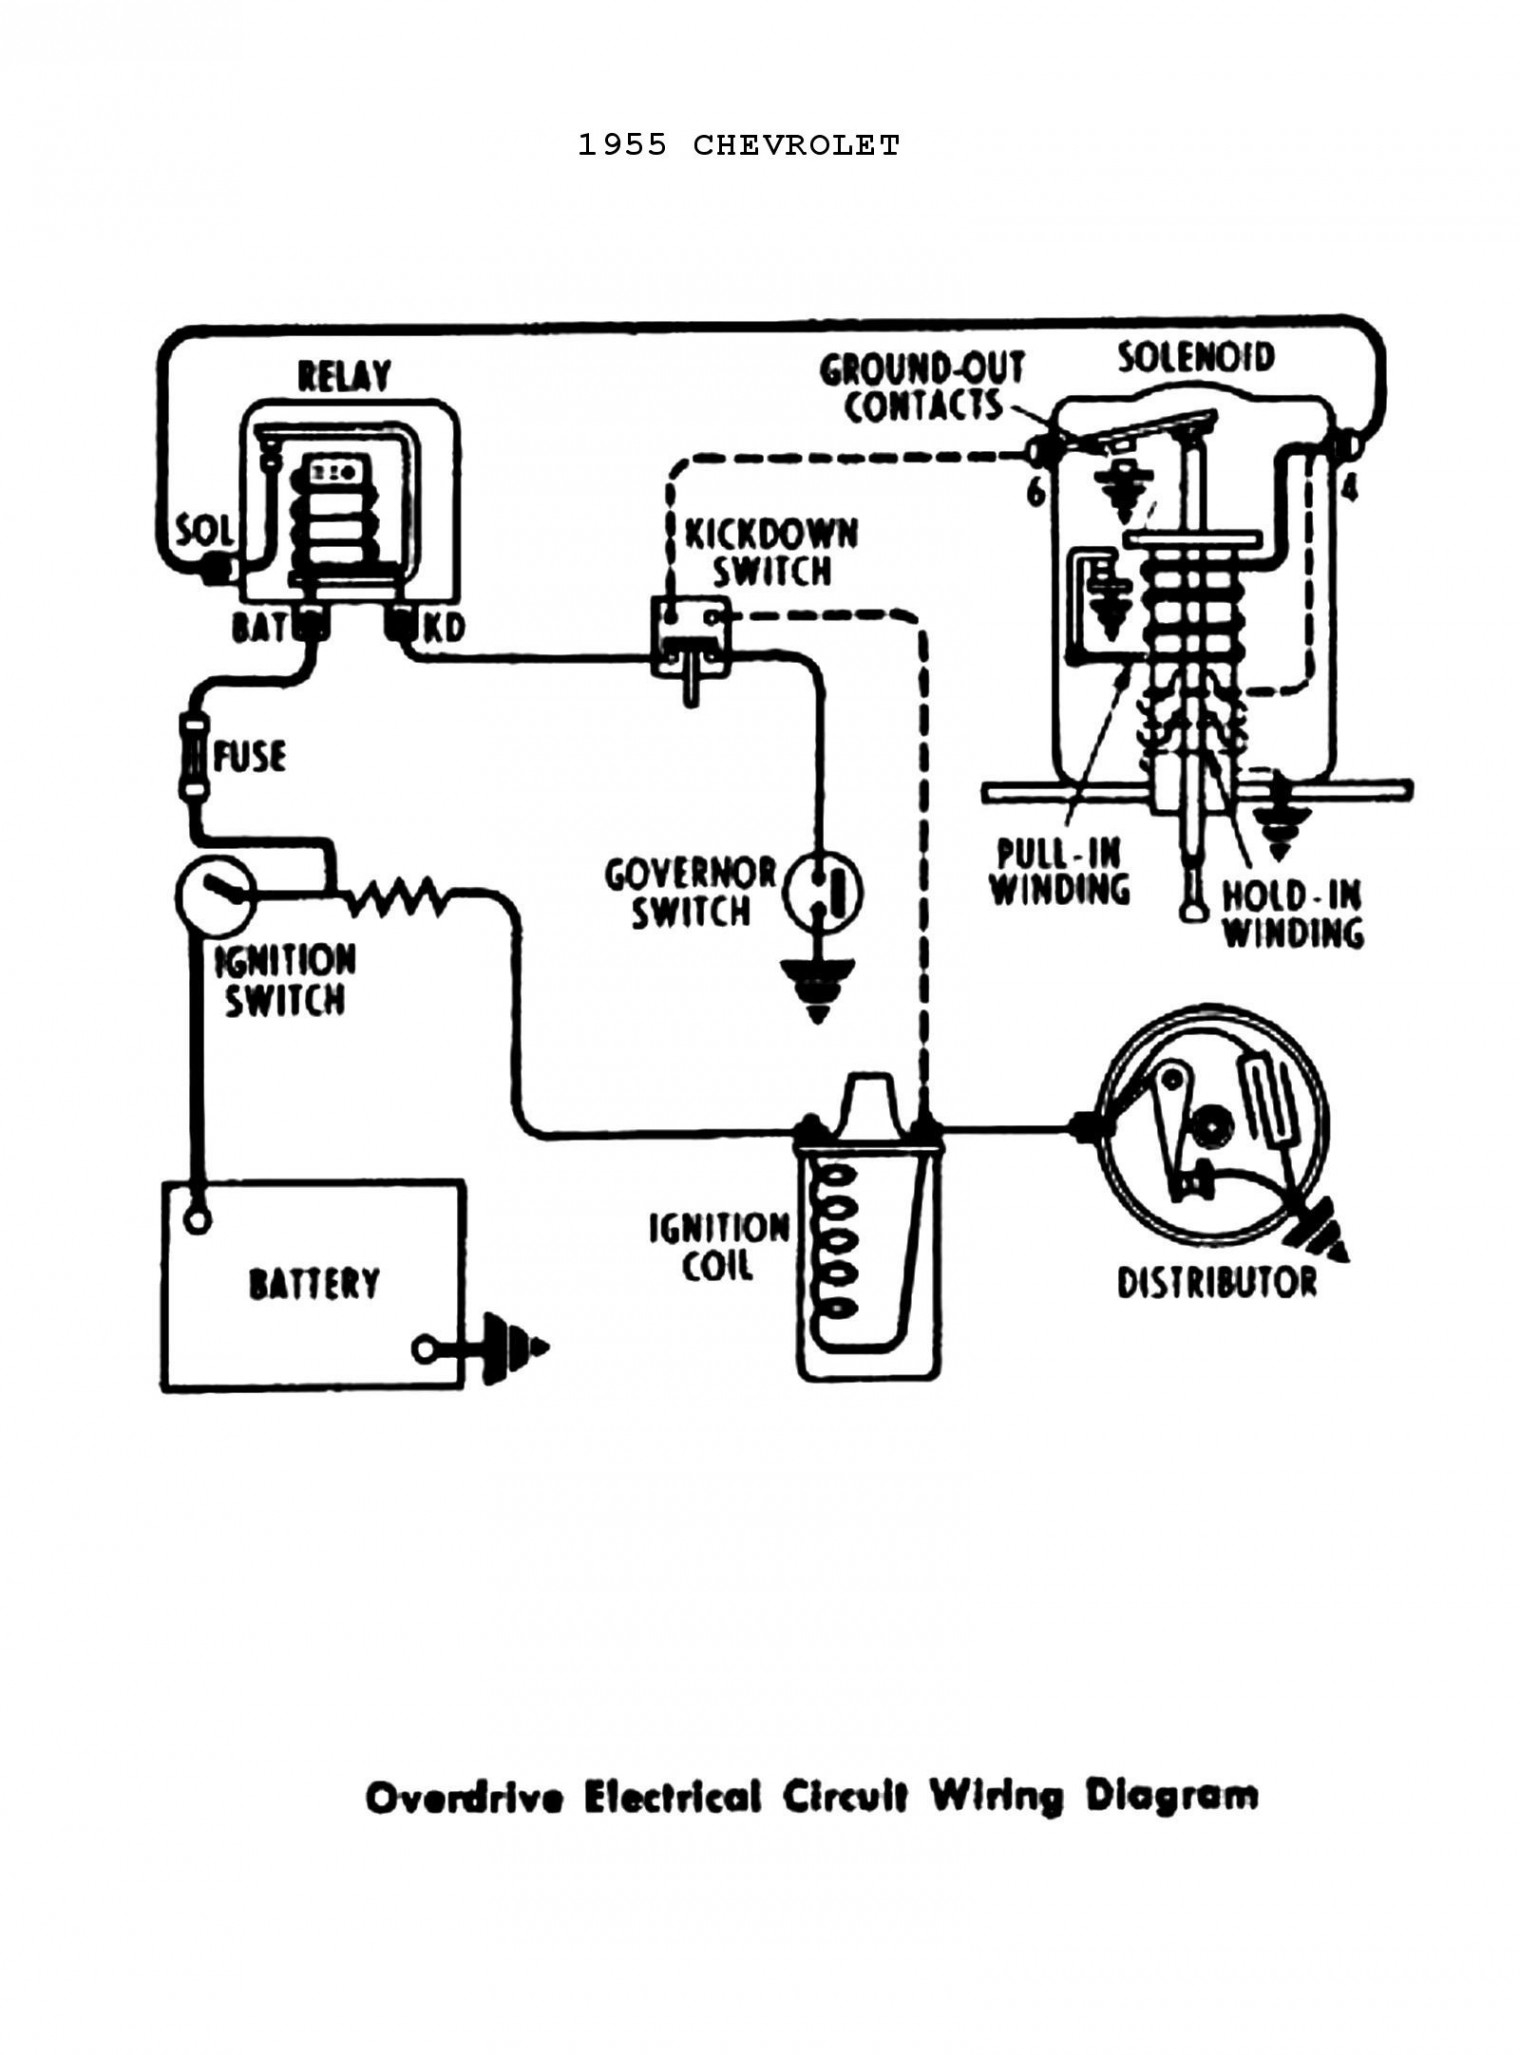 [DIAGRAM] Wiring Diagram Likewise Vzmodore As Well FULL